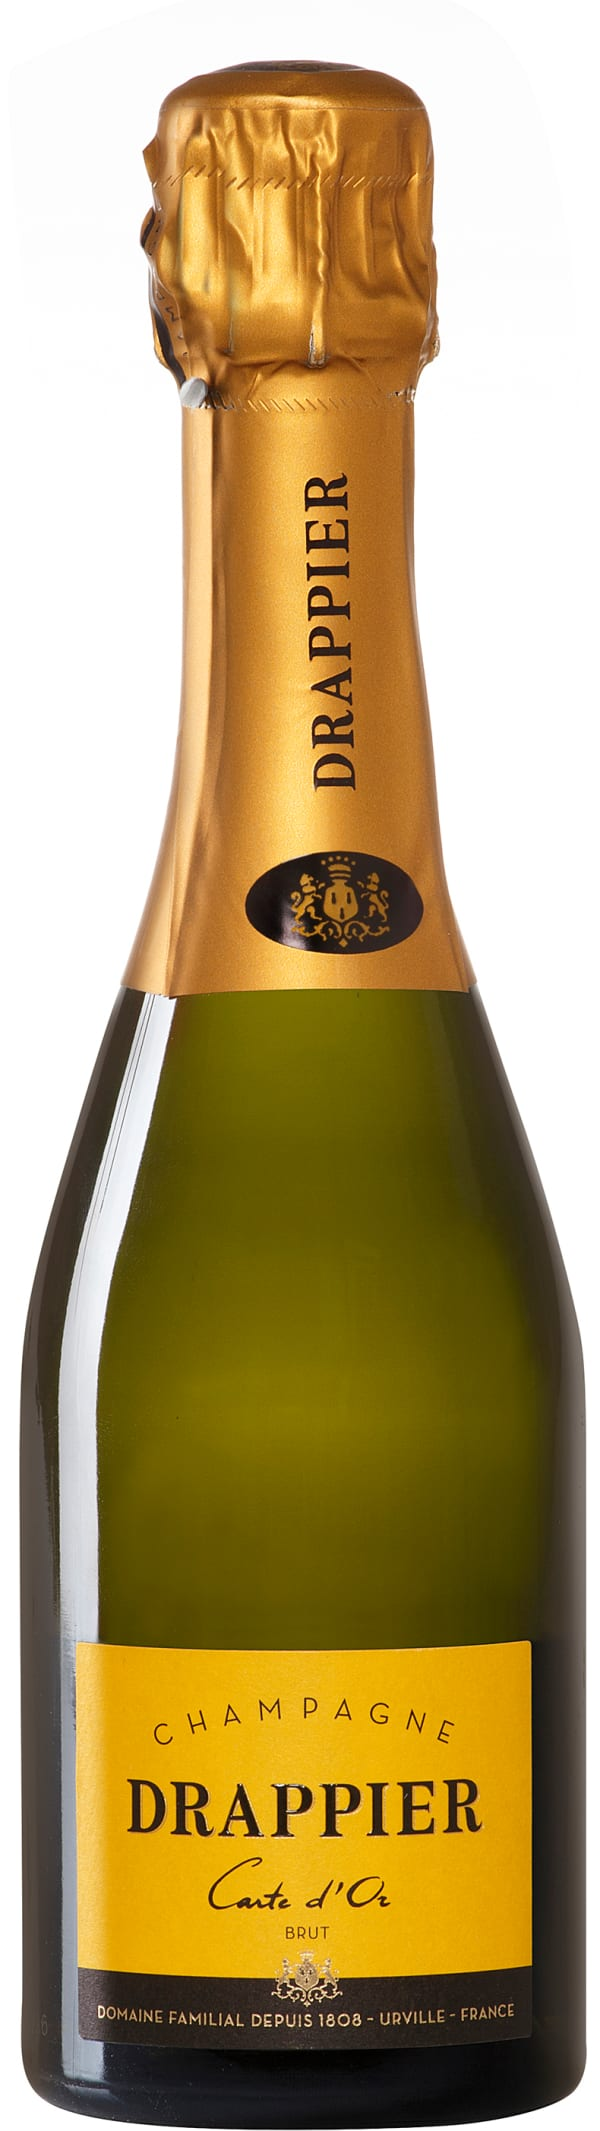 Drappier Carte d´Or Champagne Brut